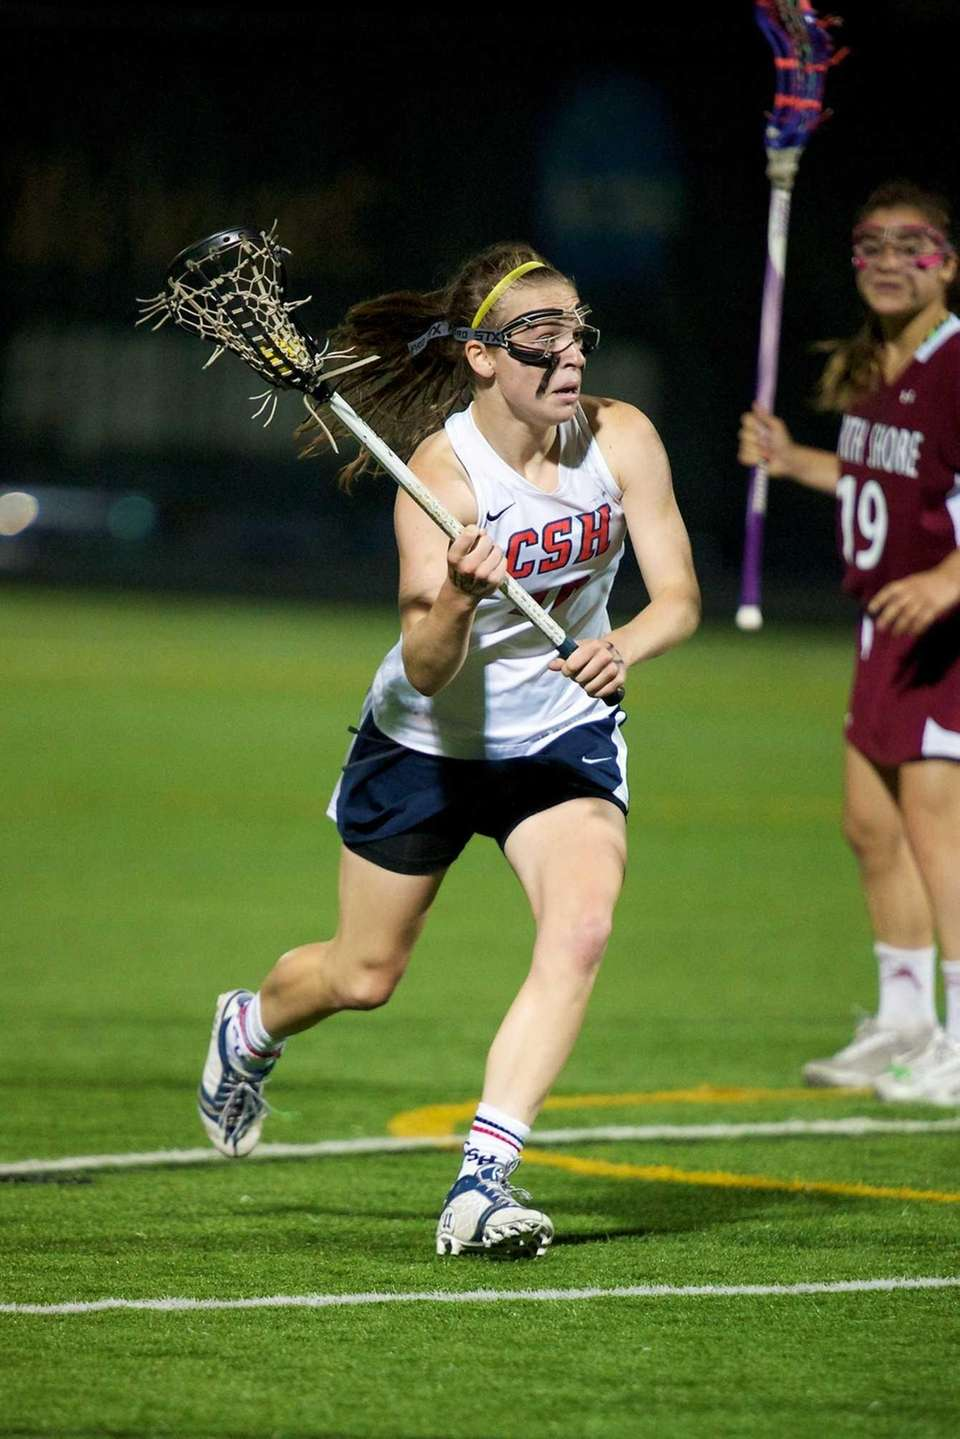 Cold Spring Harbor midfielder Katherine Rueger looks to